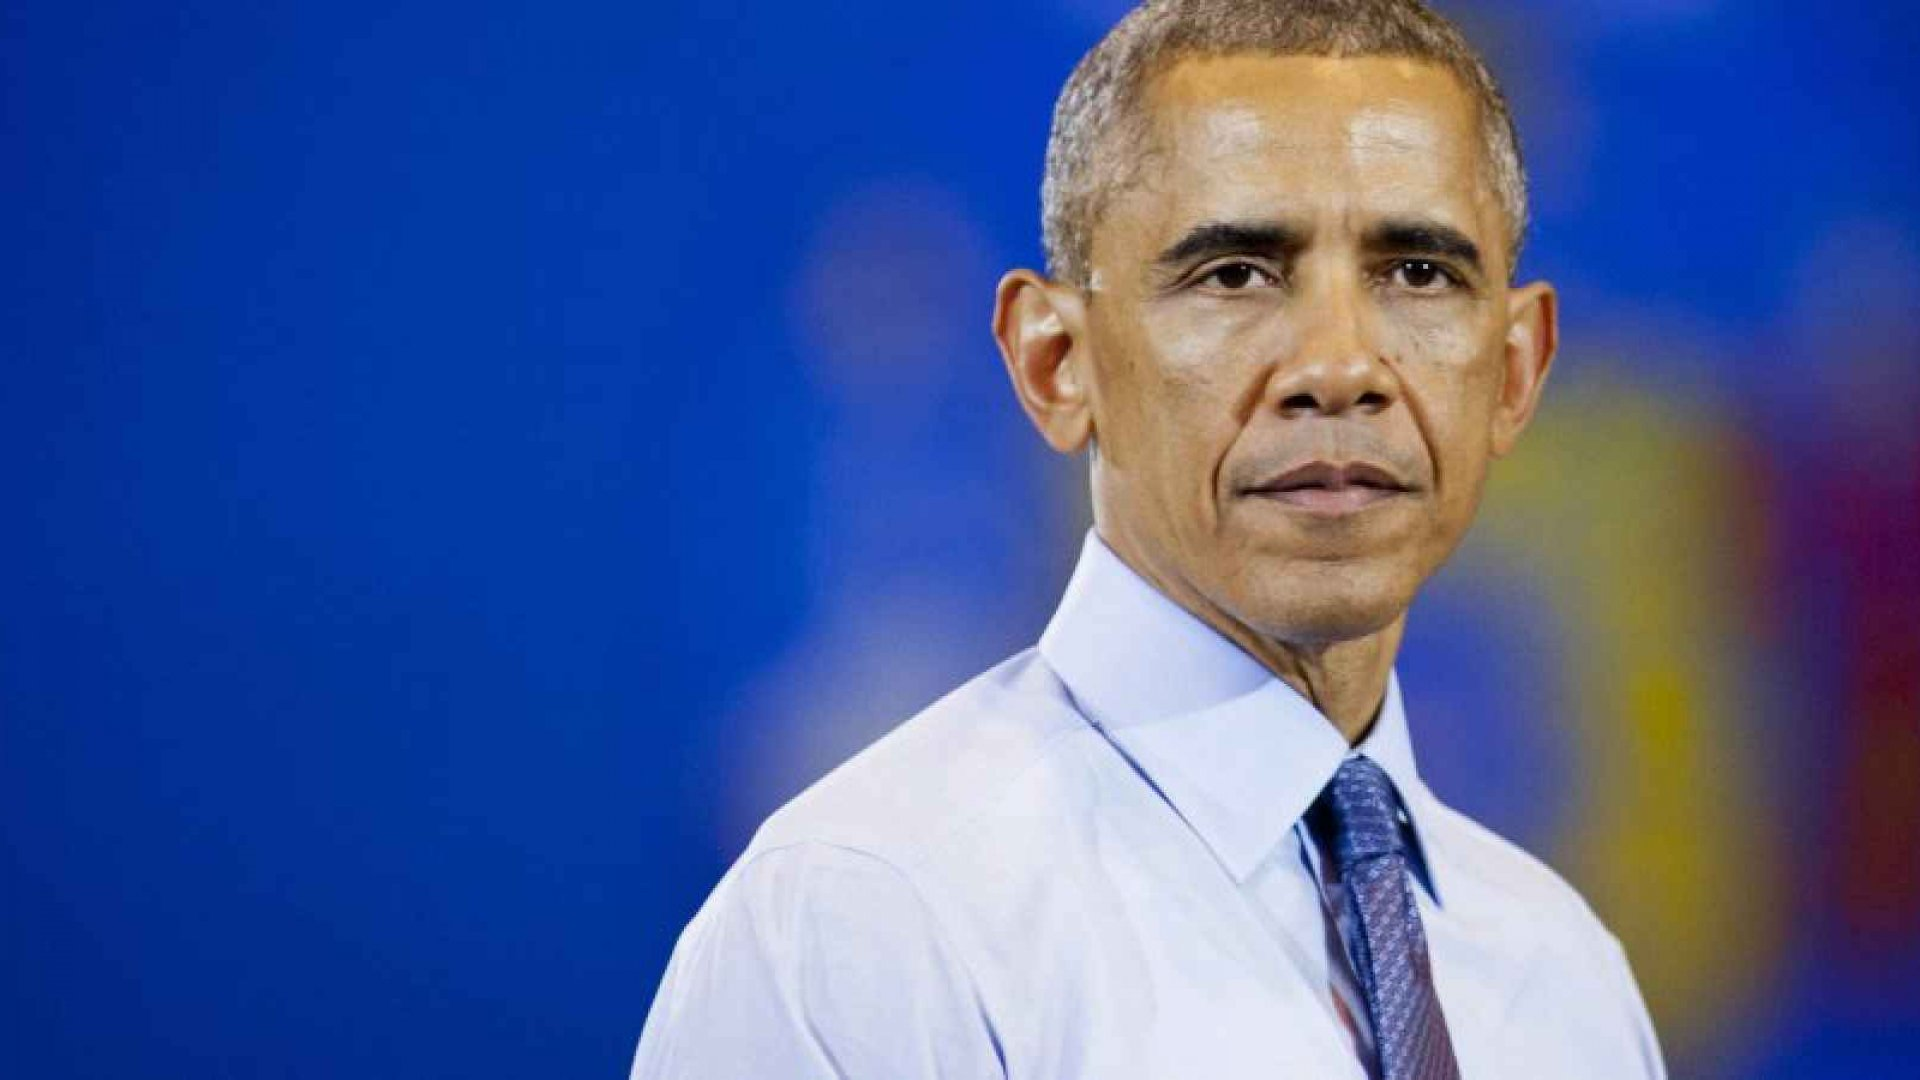 Why Obama's Immigration Overhaul Will Be a Big 'F*****g' Deal for Business